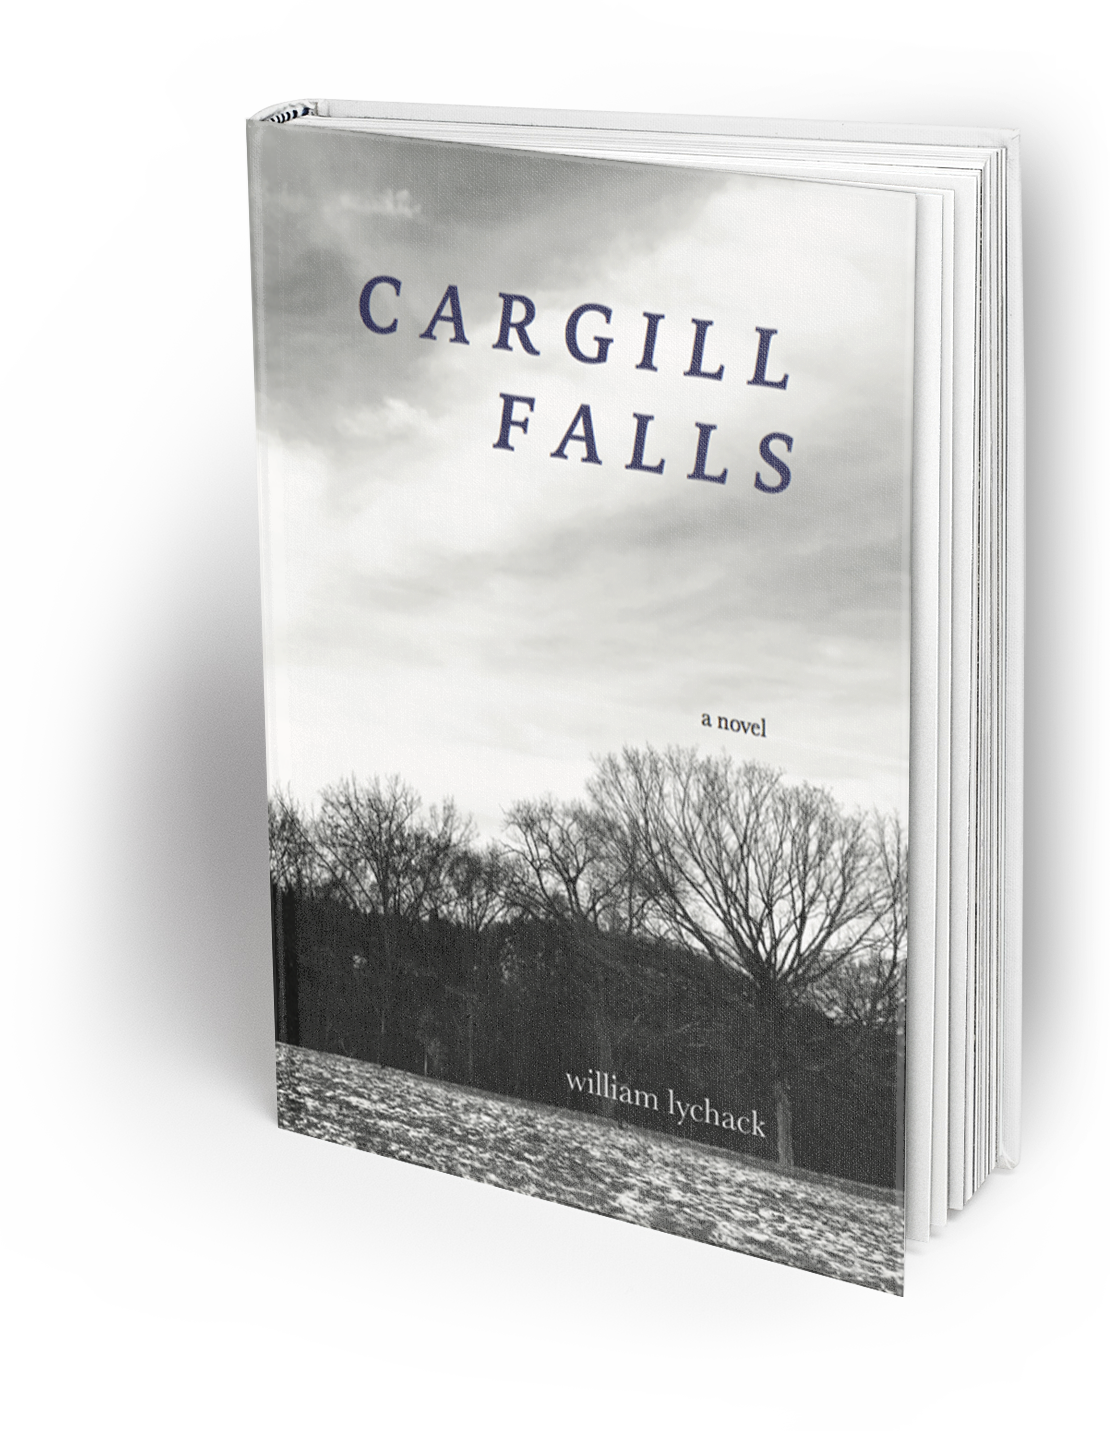 "Reviews for Cargill Falls - ""Cargill Falls is an immediate classic. At once essential and profound and hugely entertaining, the story of the two boys at the heart of this book, and the men they become, follows in the tradition of great coming of age stories like Stand by Me, and then twists and reinvents and does the tradition better, upending all that we know and expect. It's rare to come across books like this. A writer hopes that once in his or her life he or she can write something so honest.""     —Charles Bock, Beautiful Children""In how it slows down the world, William Lychack's Cargill Falls achieves something quite unexpected: this is a book that makes your heart drum loudly, that leaves you breathless under the tall canopy of a forest in Connecticut in the 1980s, that pulls you toward a single day's burning, bright core. Not since William Maxwell's So Long, See You Tomorrow has a novel captured so wondrously the landscape of youth, regret, mystery, and violence, and done it with such tenderness, humor, and raw, wild energy.""     —Paul Yoon, Snow Hunters""William Lychack's exquisite sensibility of language combines with delicate dramatic tension as he explores the possible meaninglessness of causality. What if one event is not related to another? This is the best novel about adolescent boys I can remember.""     —Blanche McCrary Boyd, Tomb of the Unknown Racist ""A double dimension dream of a book, Cargill Falls trapezes adroitly between the quotidian's ancient ache and the elusive, gleamingly provocative escutcheon of the ideal. It is moving, tender, and compelling from start to finish.""     —Patrick McCabe, The Butcher Boy"